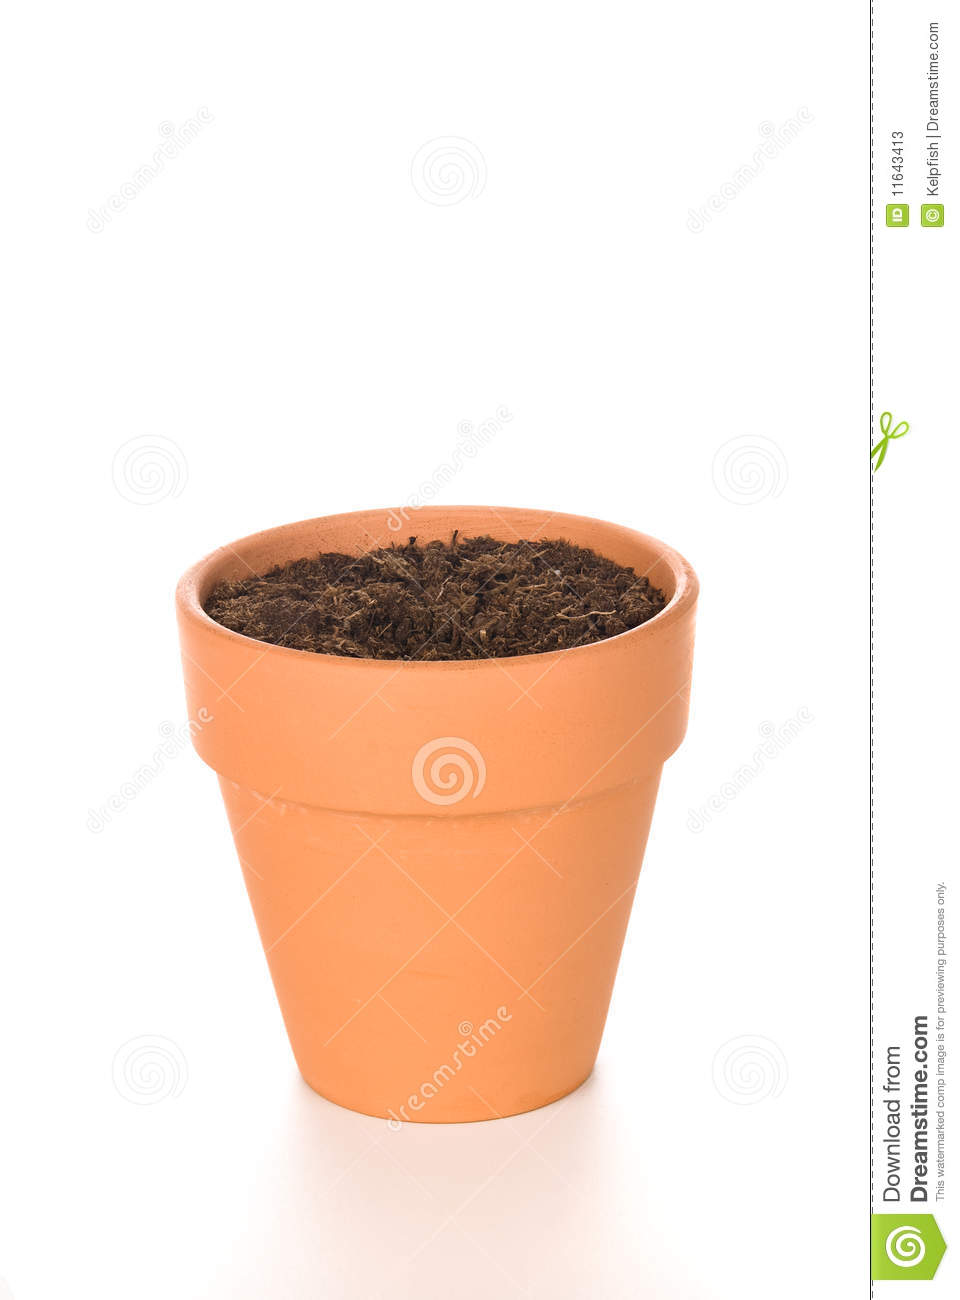 Clay Flower Pot with Soil  sc 1 st  Dreamstime.com & Clay Flower Pot with Soil stock image. Image of pottery - 11643413